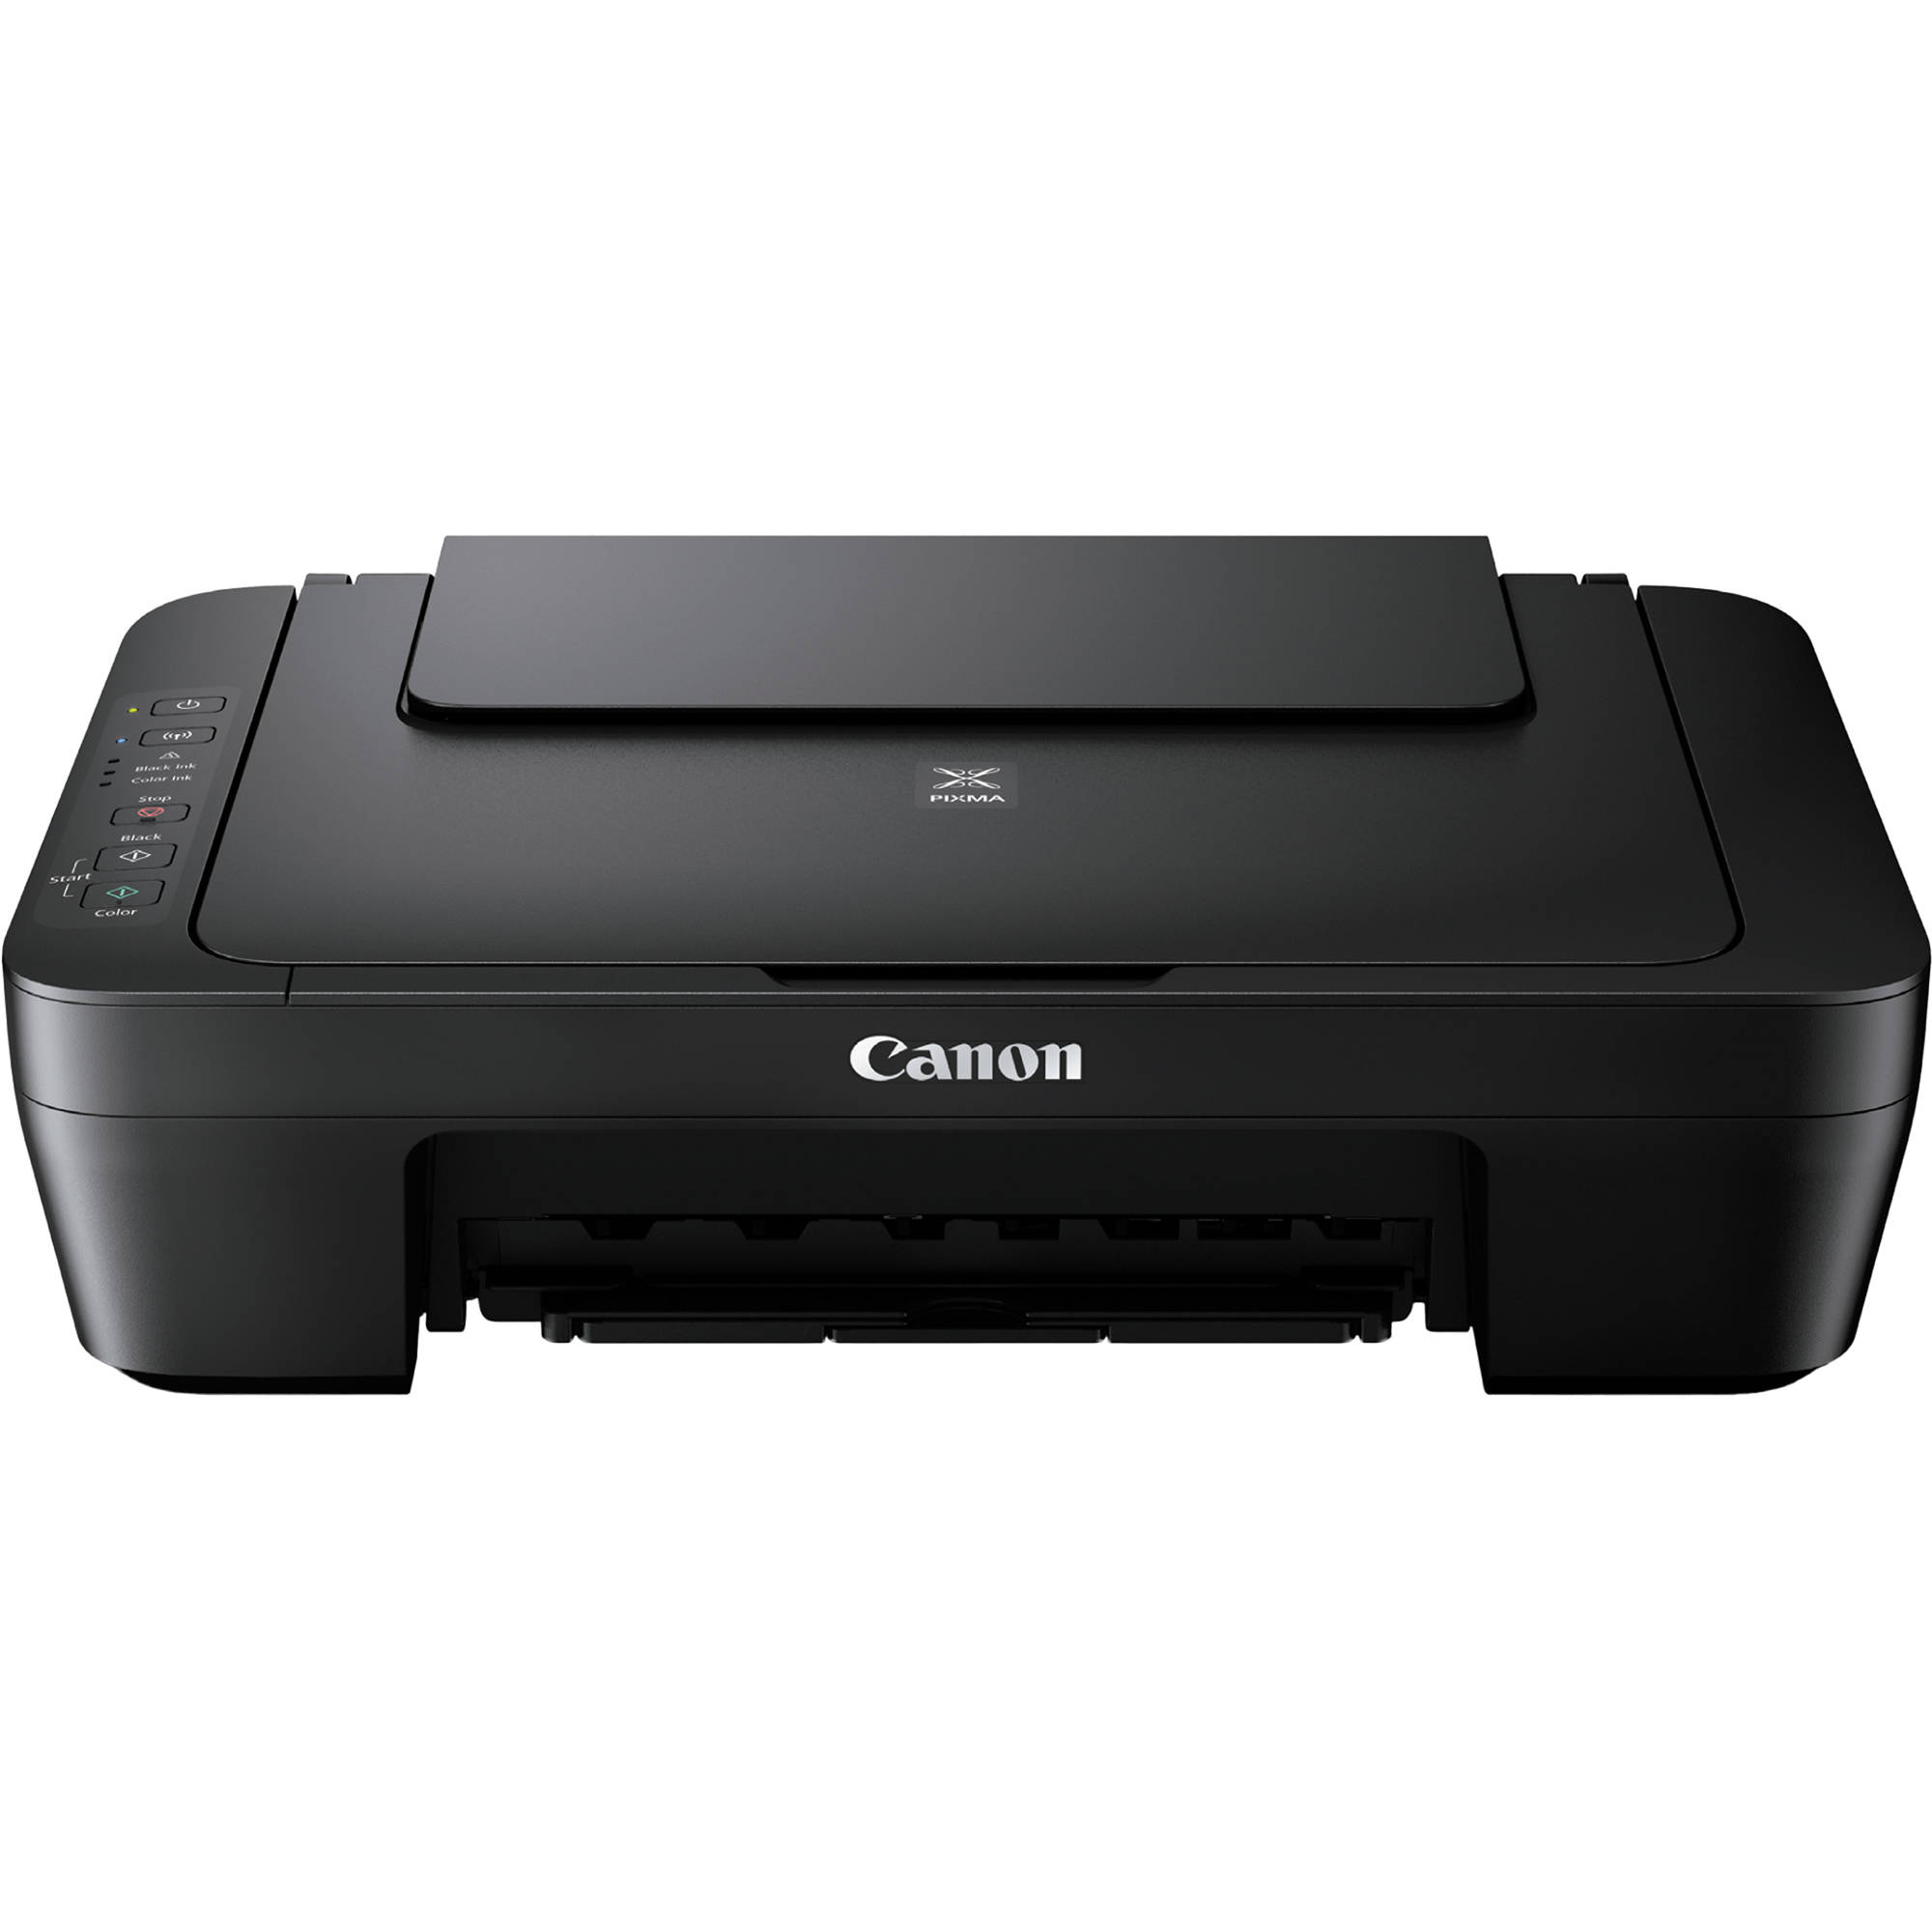 nakshatra systems canon service center in palavakkam, nakshatra systems canon printer service center in palavakkam